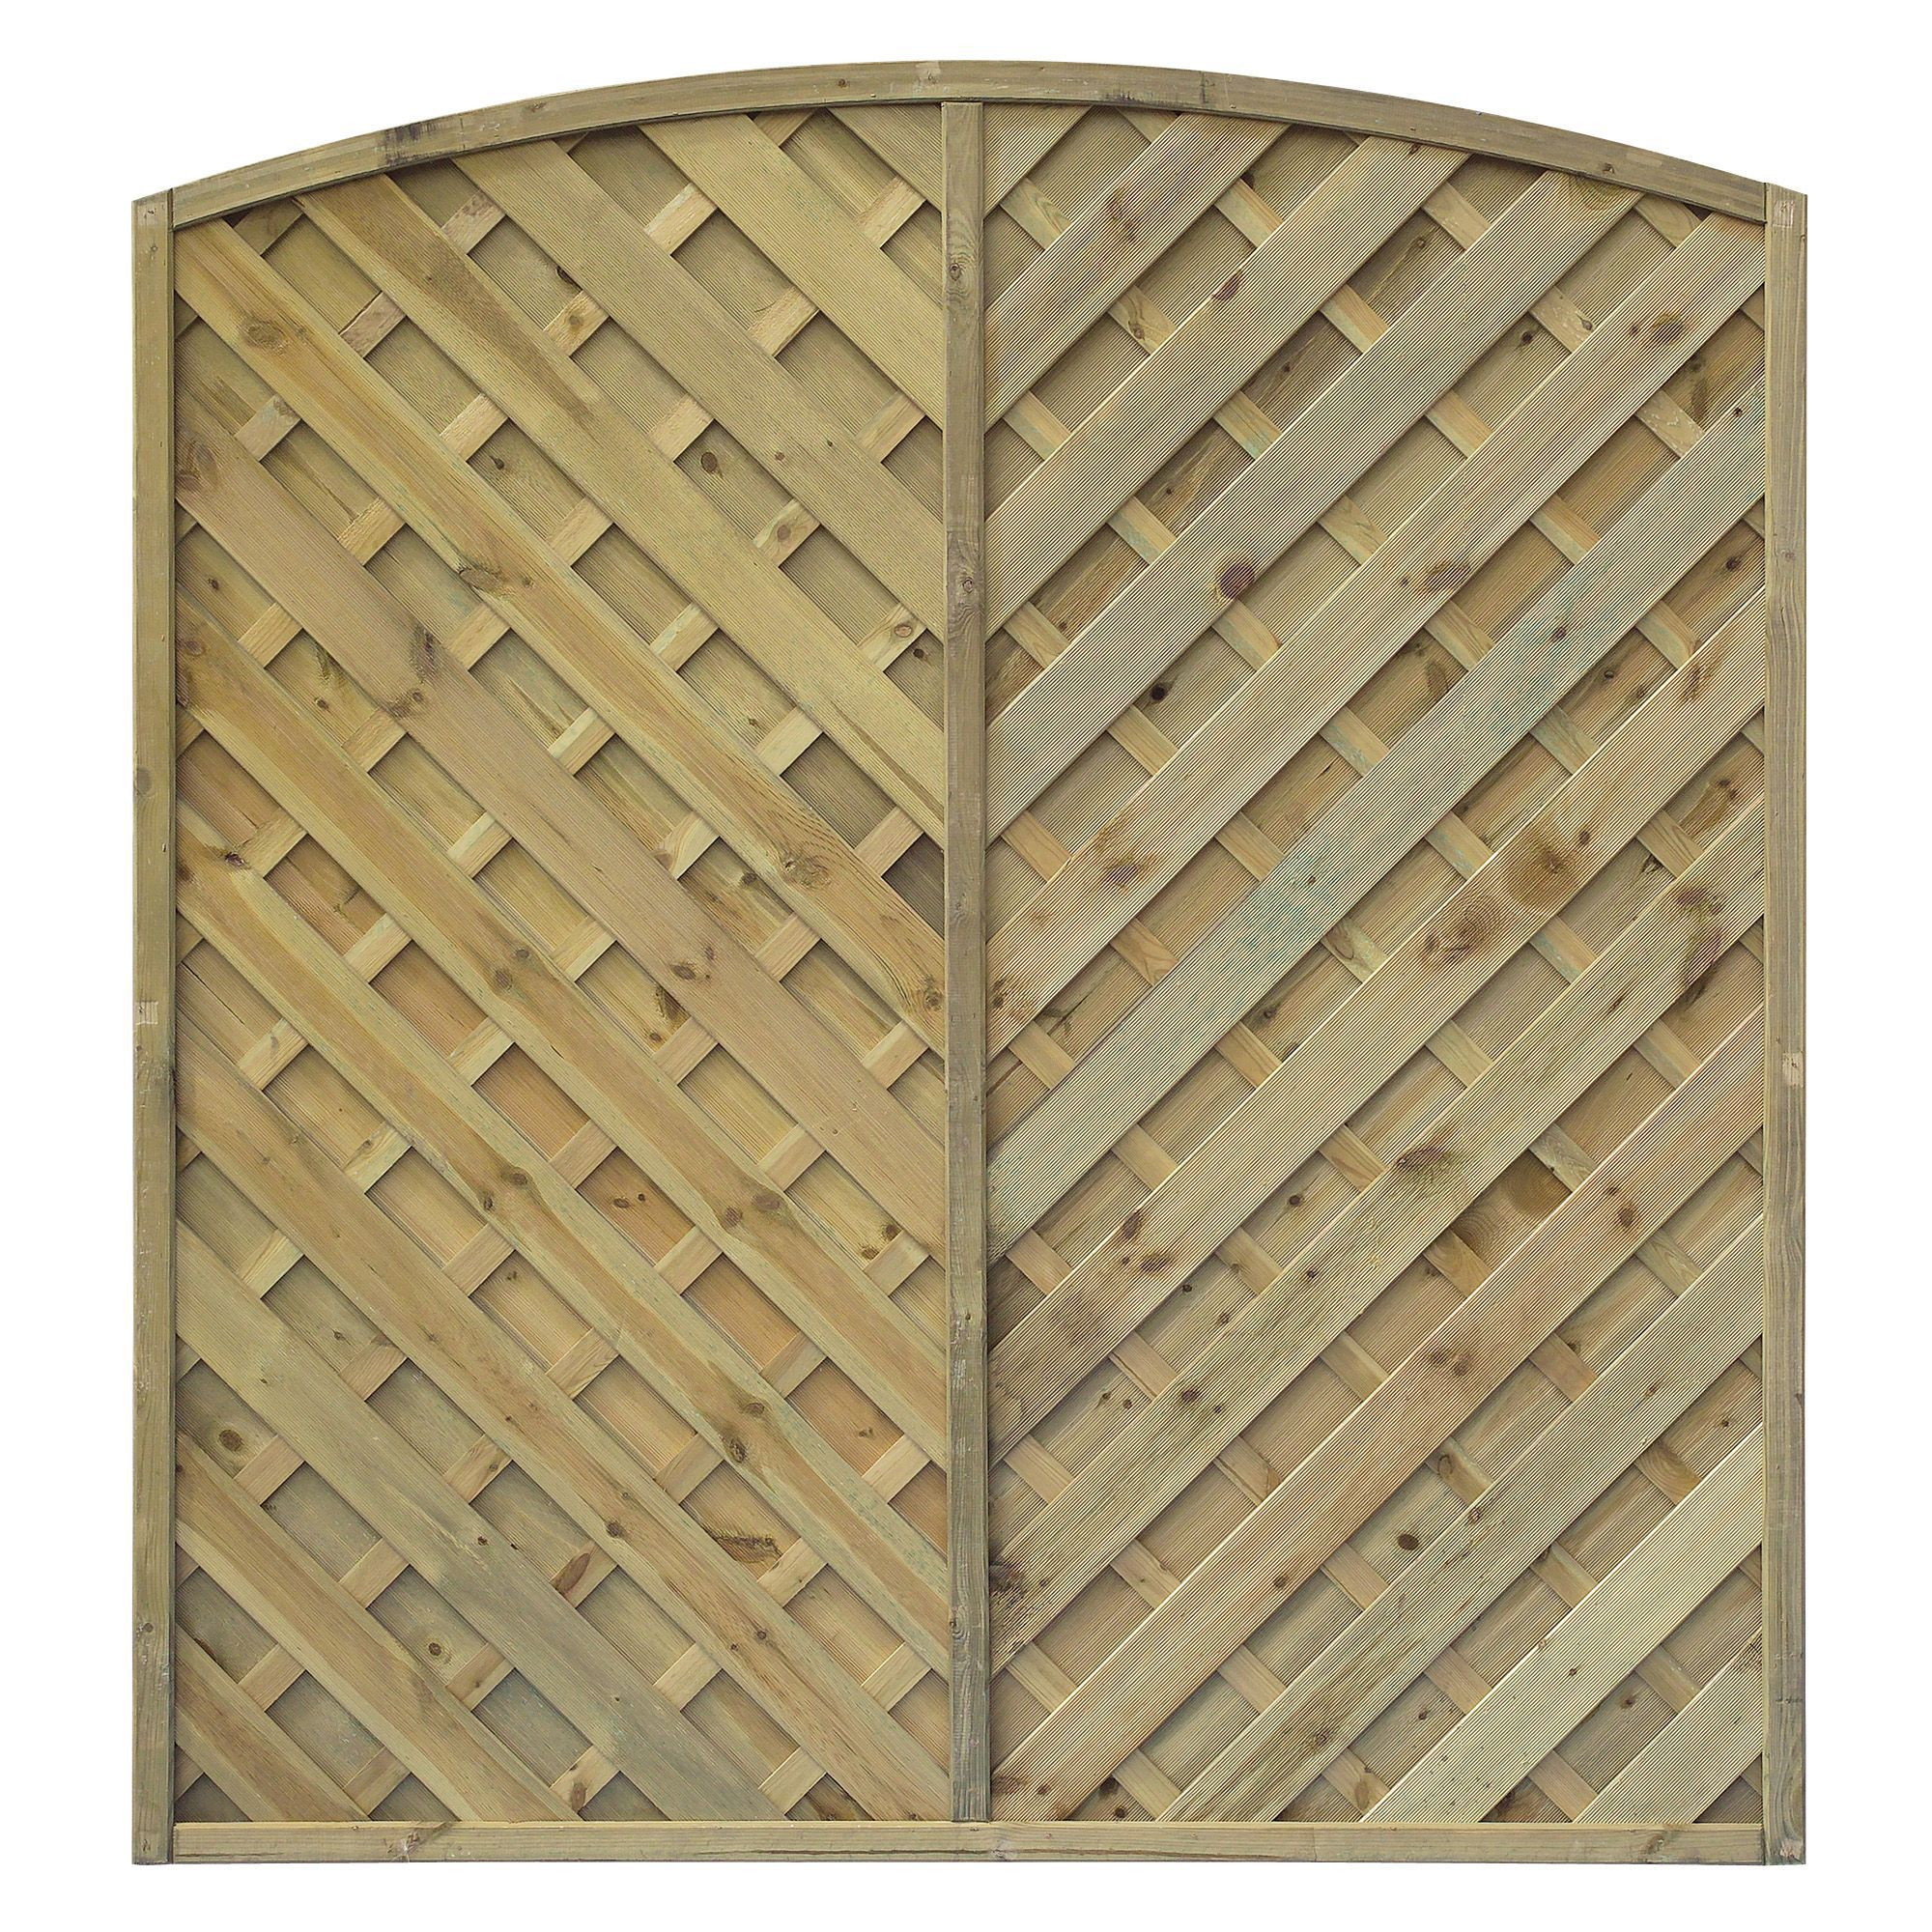 Superb img of  Timber Side Entry Gate (H)1.8m (W)0.9m Departments DIY at B&Q with #8A7241 color and 2000x2000 pixels